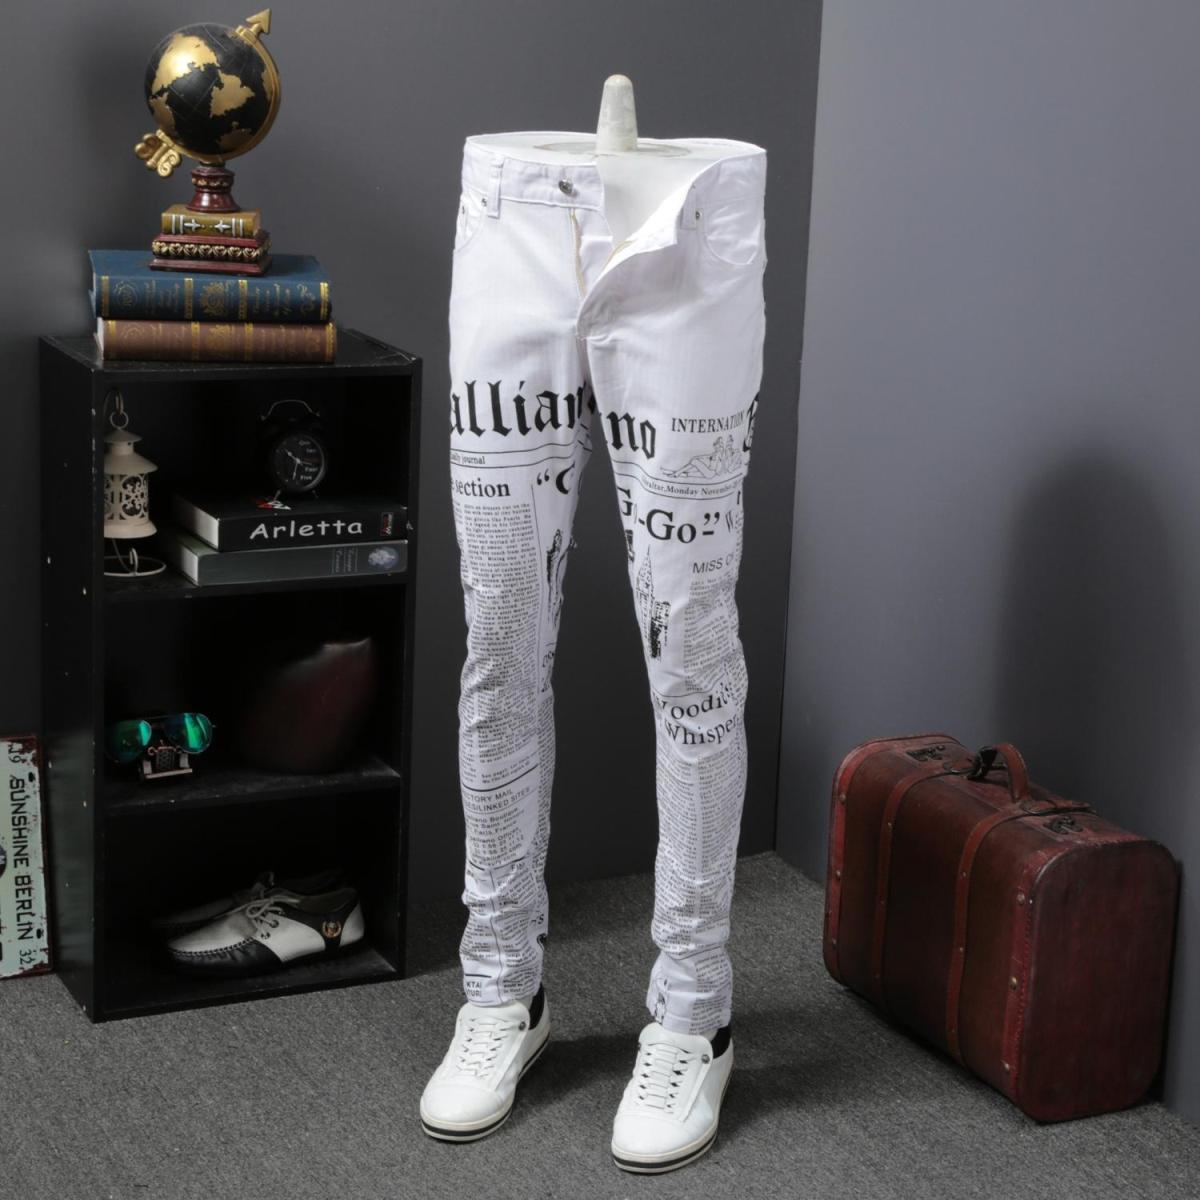 Fashion 2019 Korean Jeans Men Newspaper Print Jeans For Men Slim Fit Casual Denim Pants Men Streetwear Trousers Men Clothes